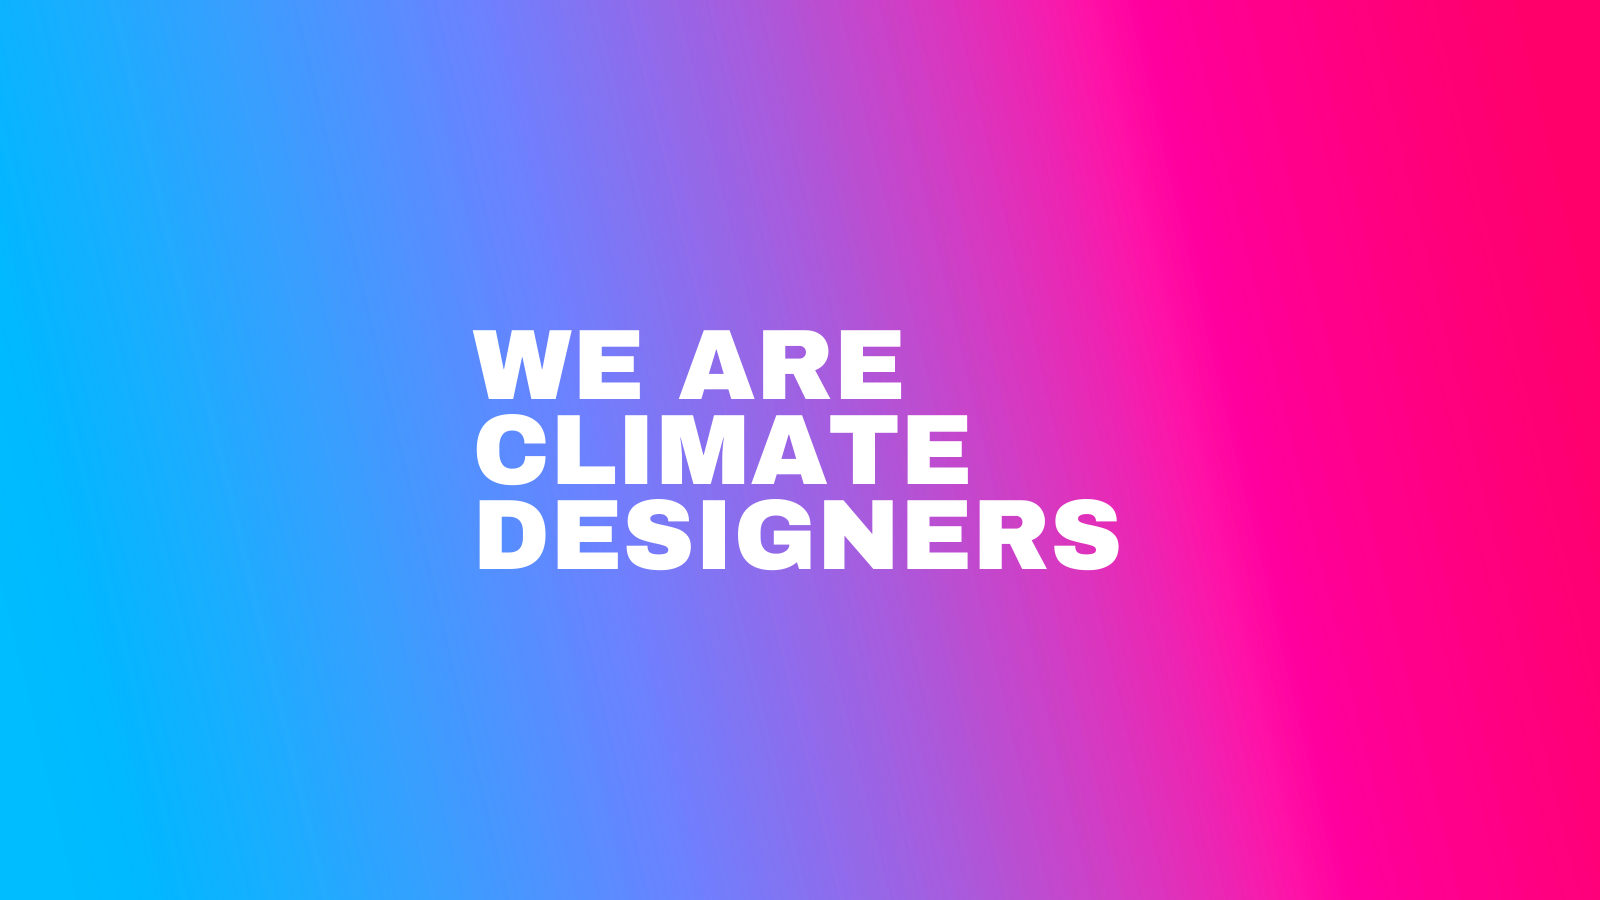 """We are climate designers"" set in large, all caps text against a blue, purple, and pink gradient background."